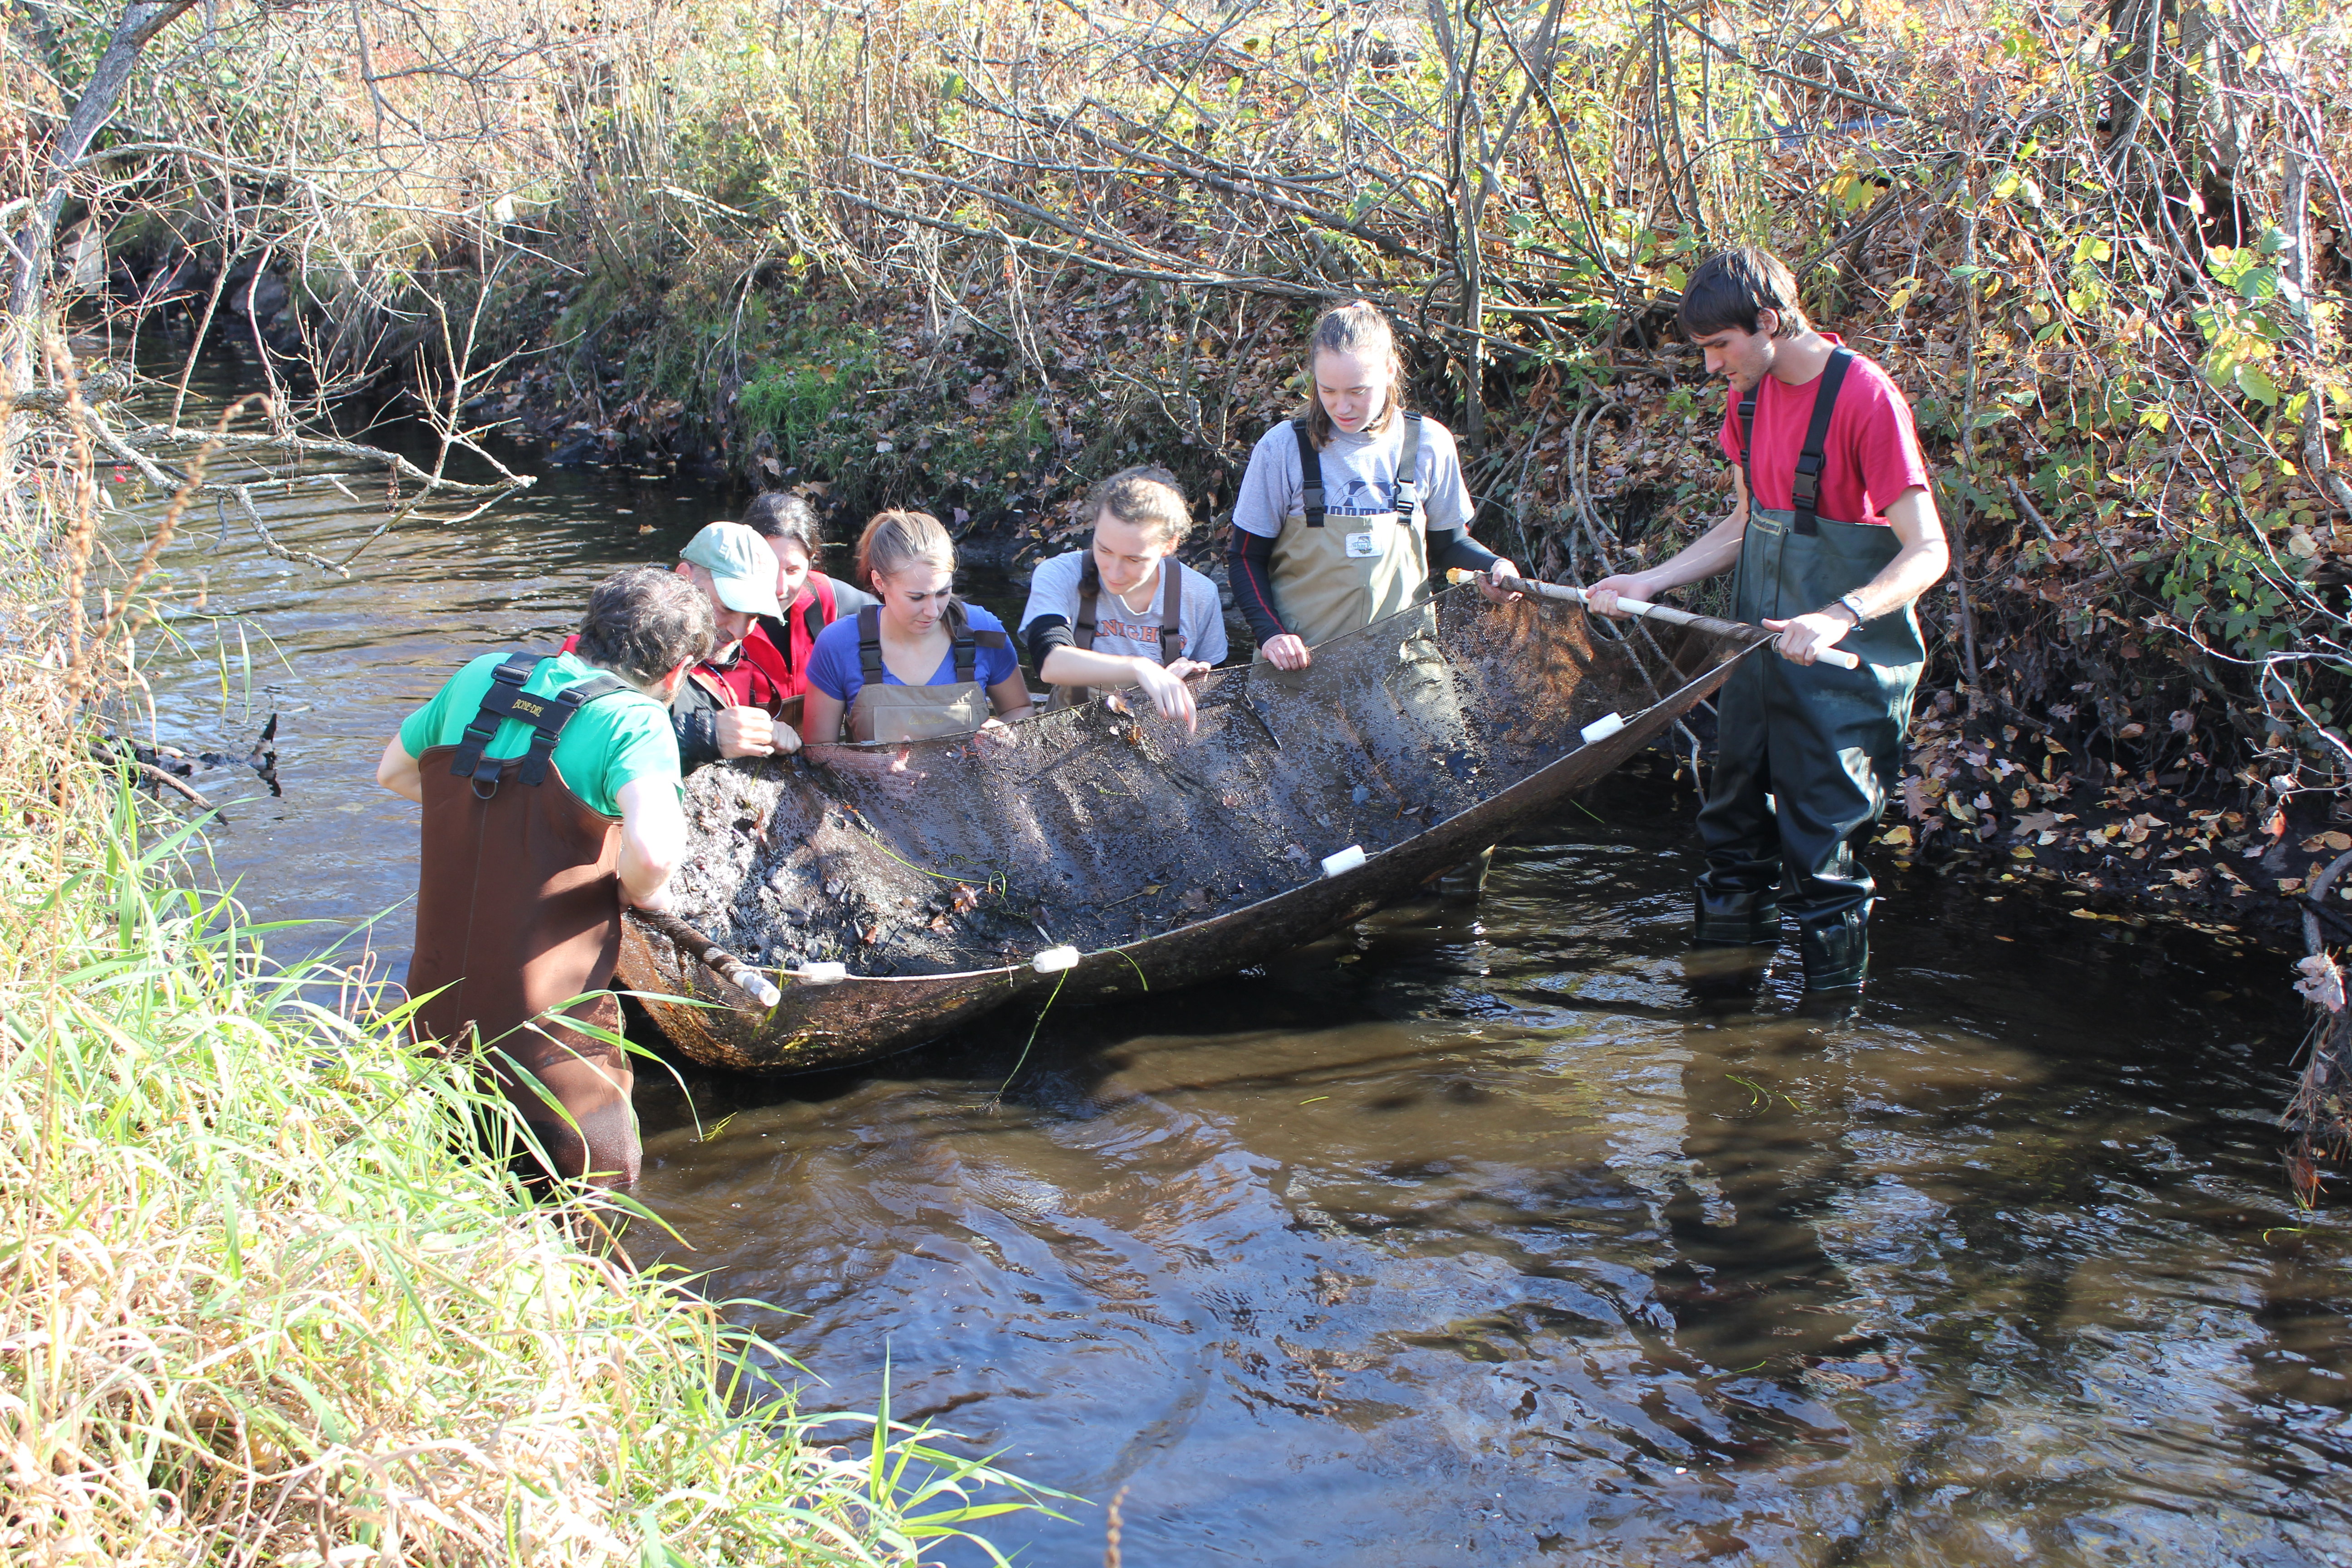 Informational Webinar – Master of Science in Conservation Medicine Program Monday, February 22, 2016 at Noon